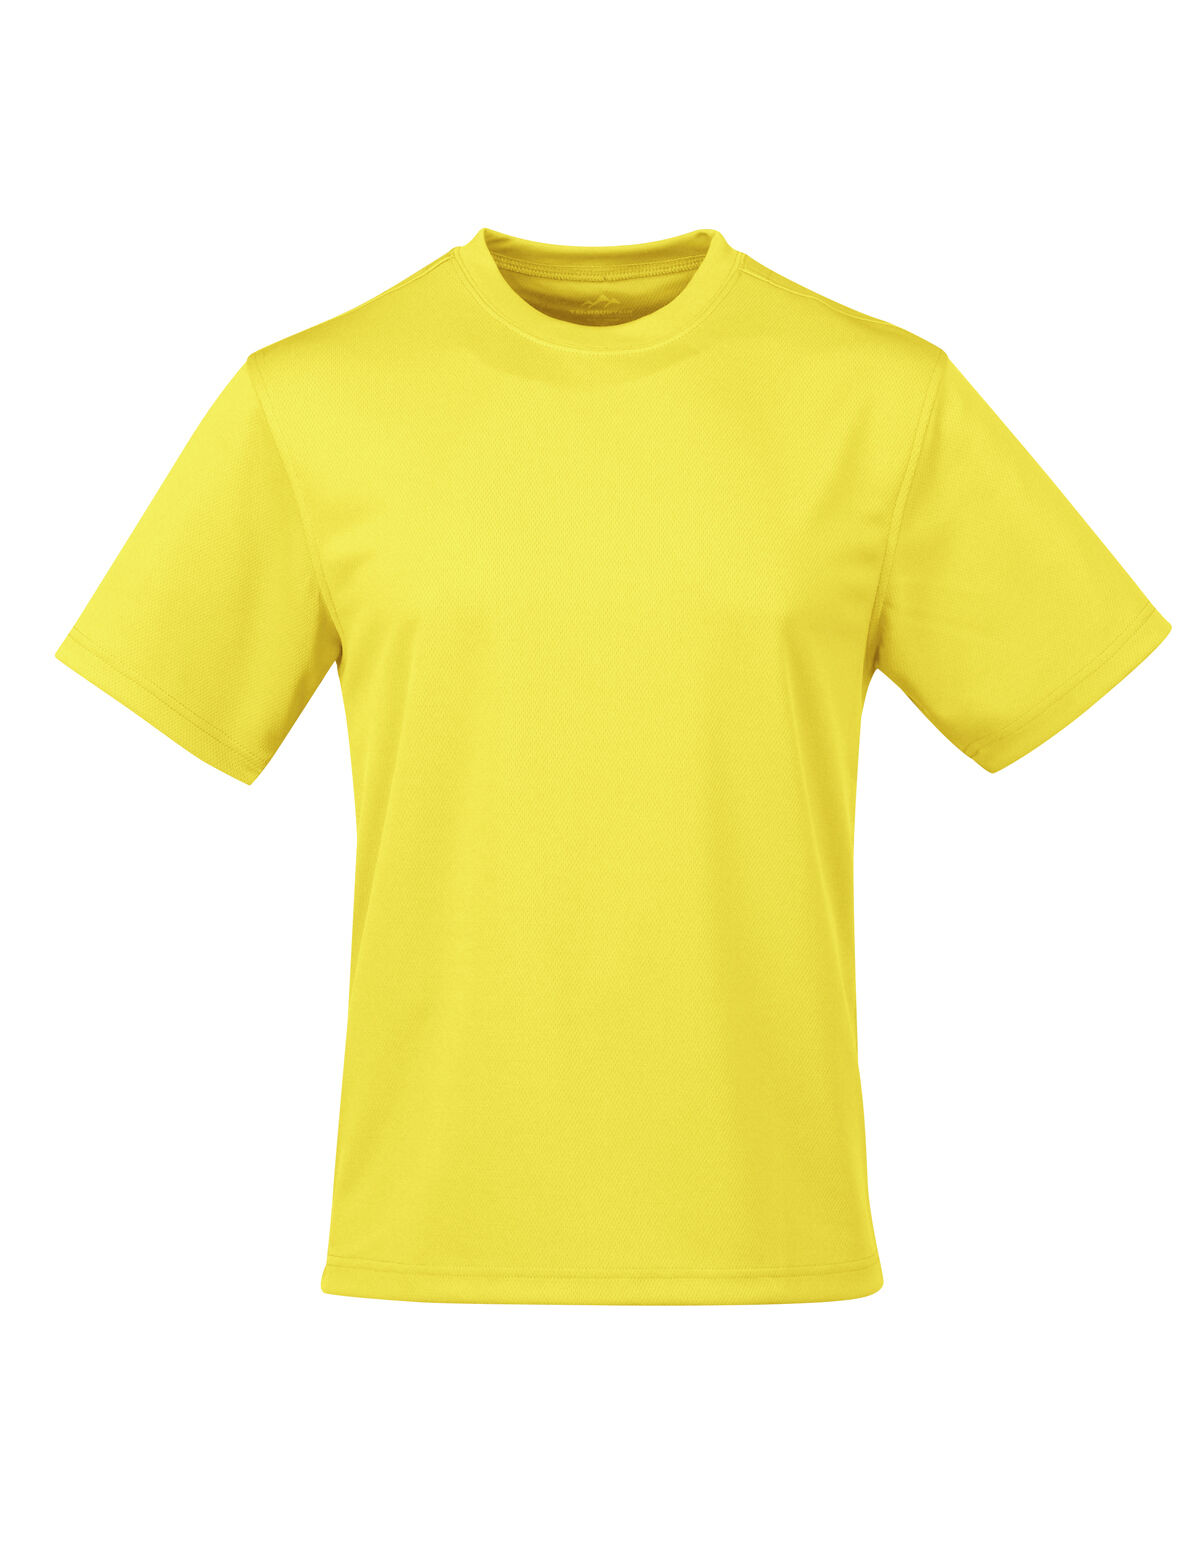 Performance T Shirt In Tall Sizing